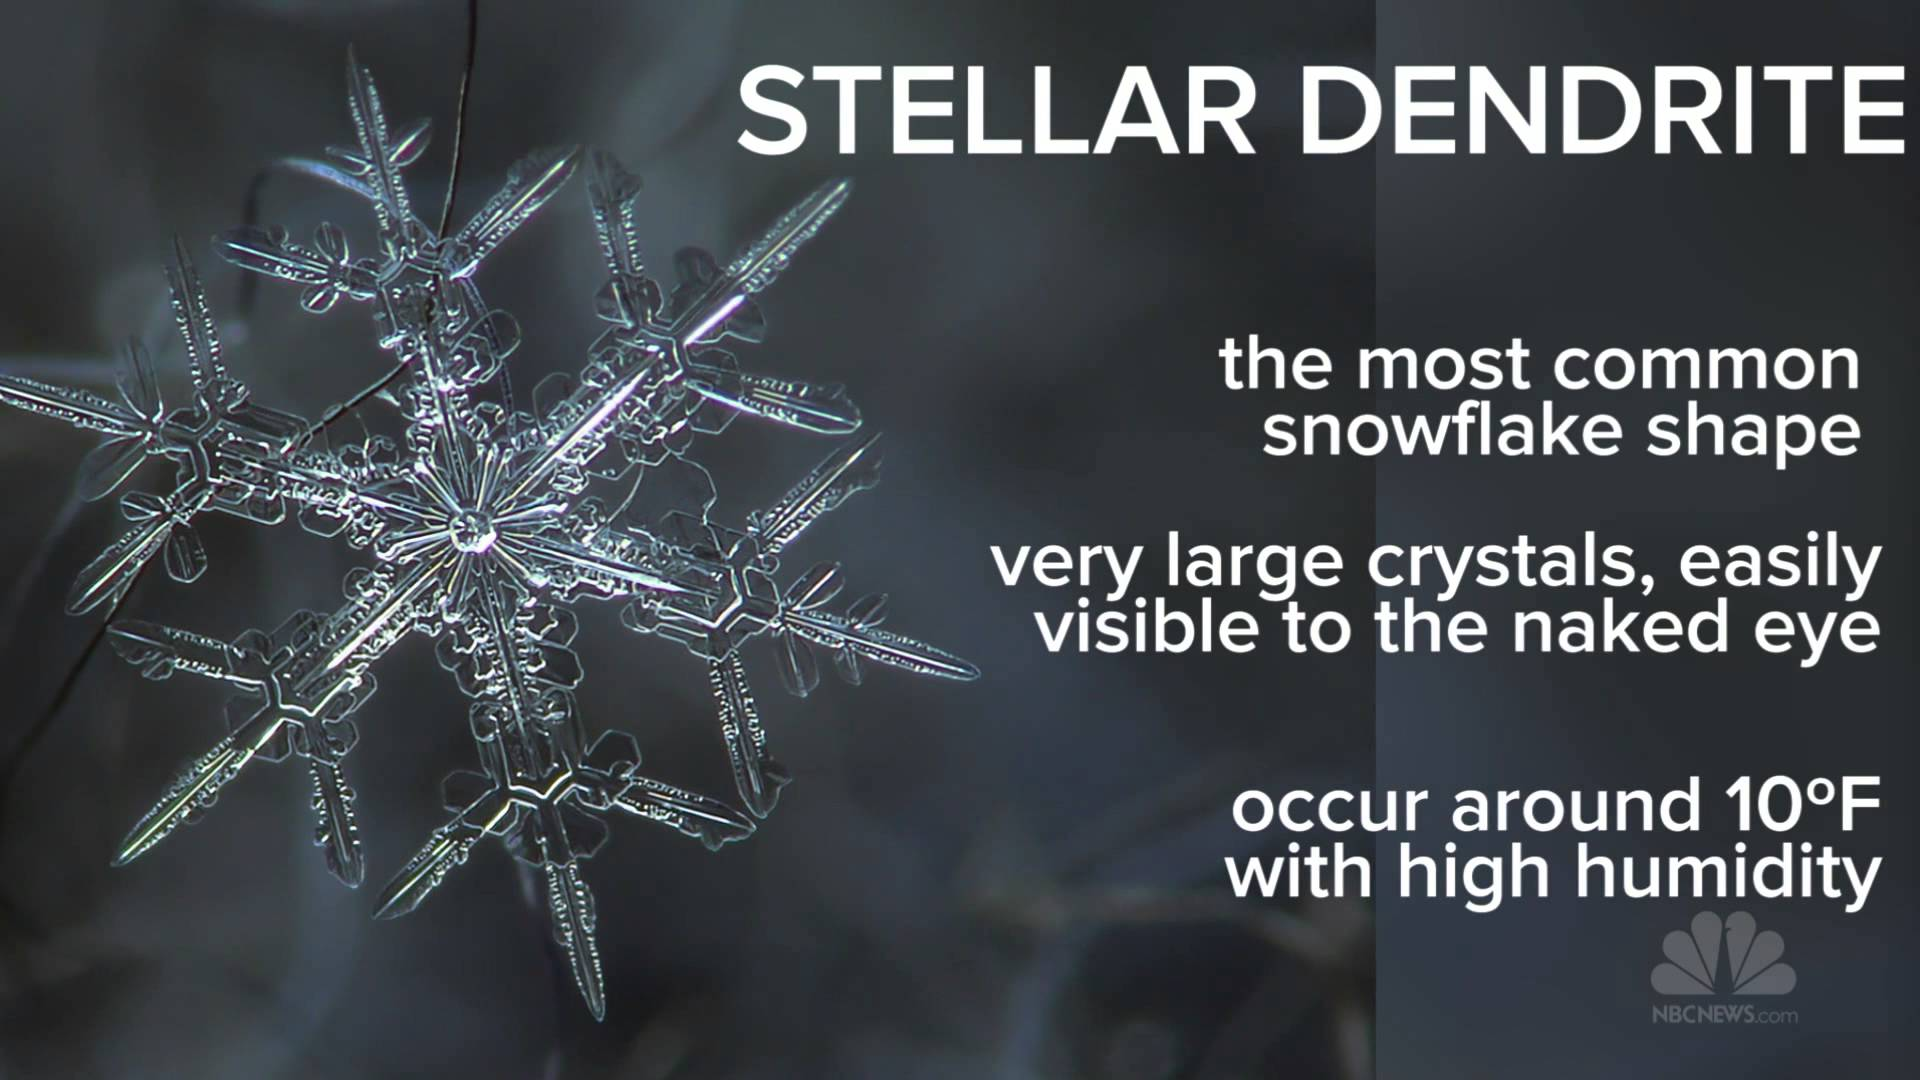 Anatomy of a snowflake